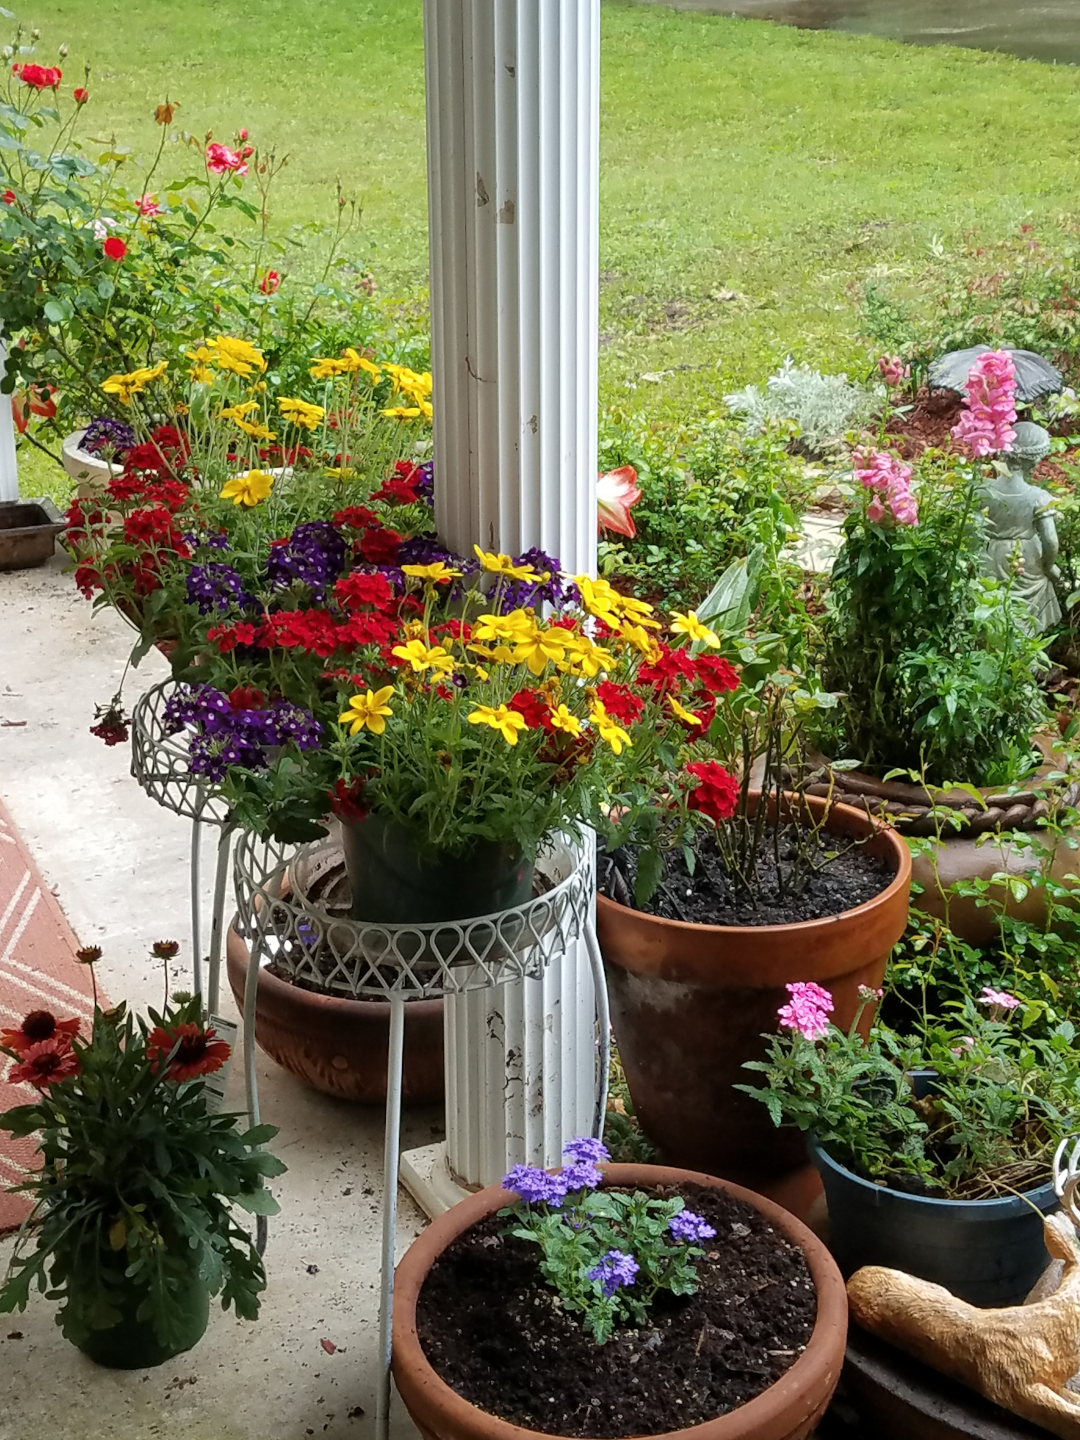 Pots of brightly colored annuals